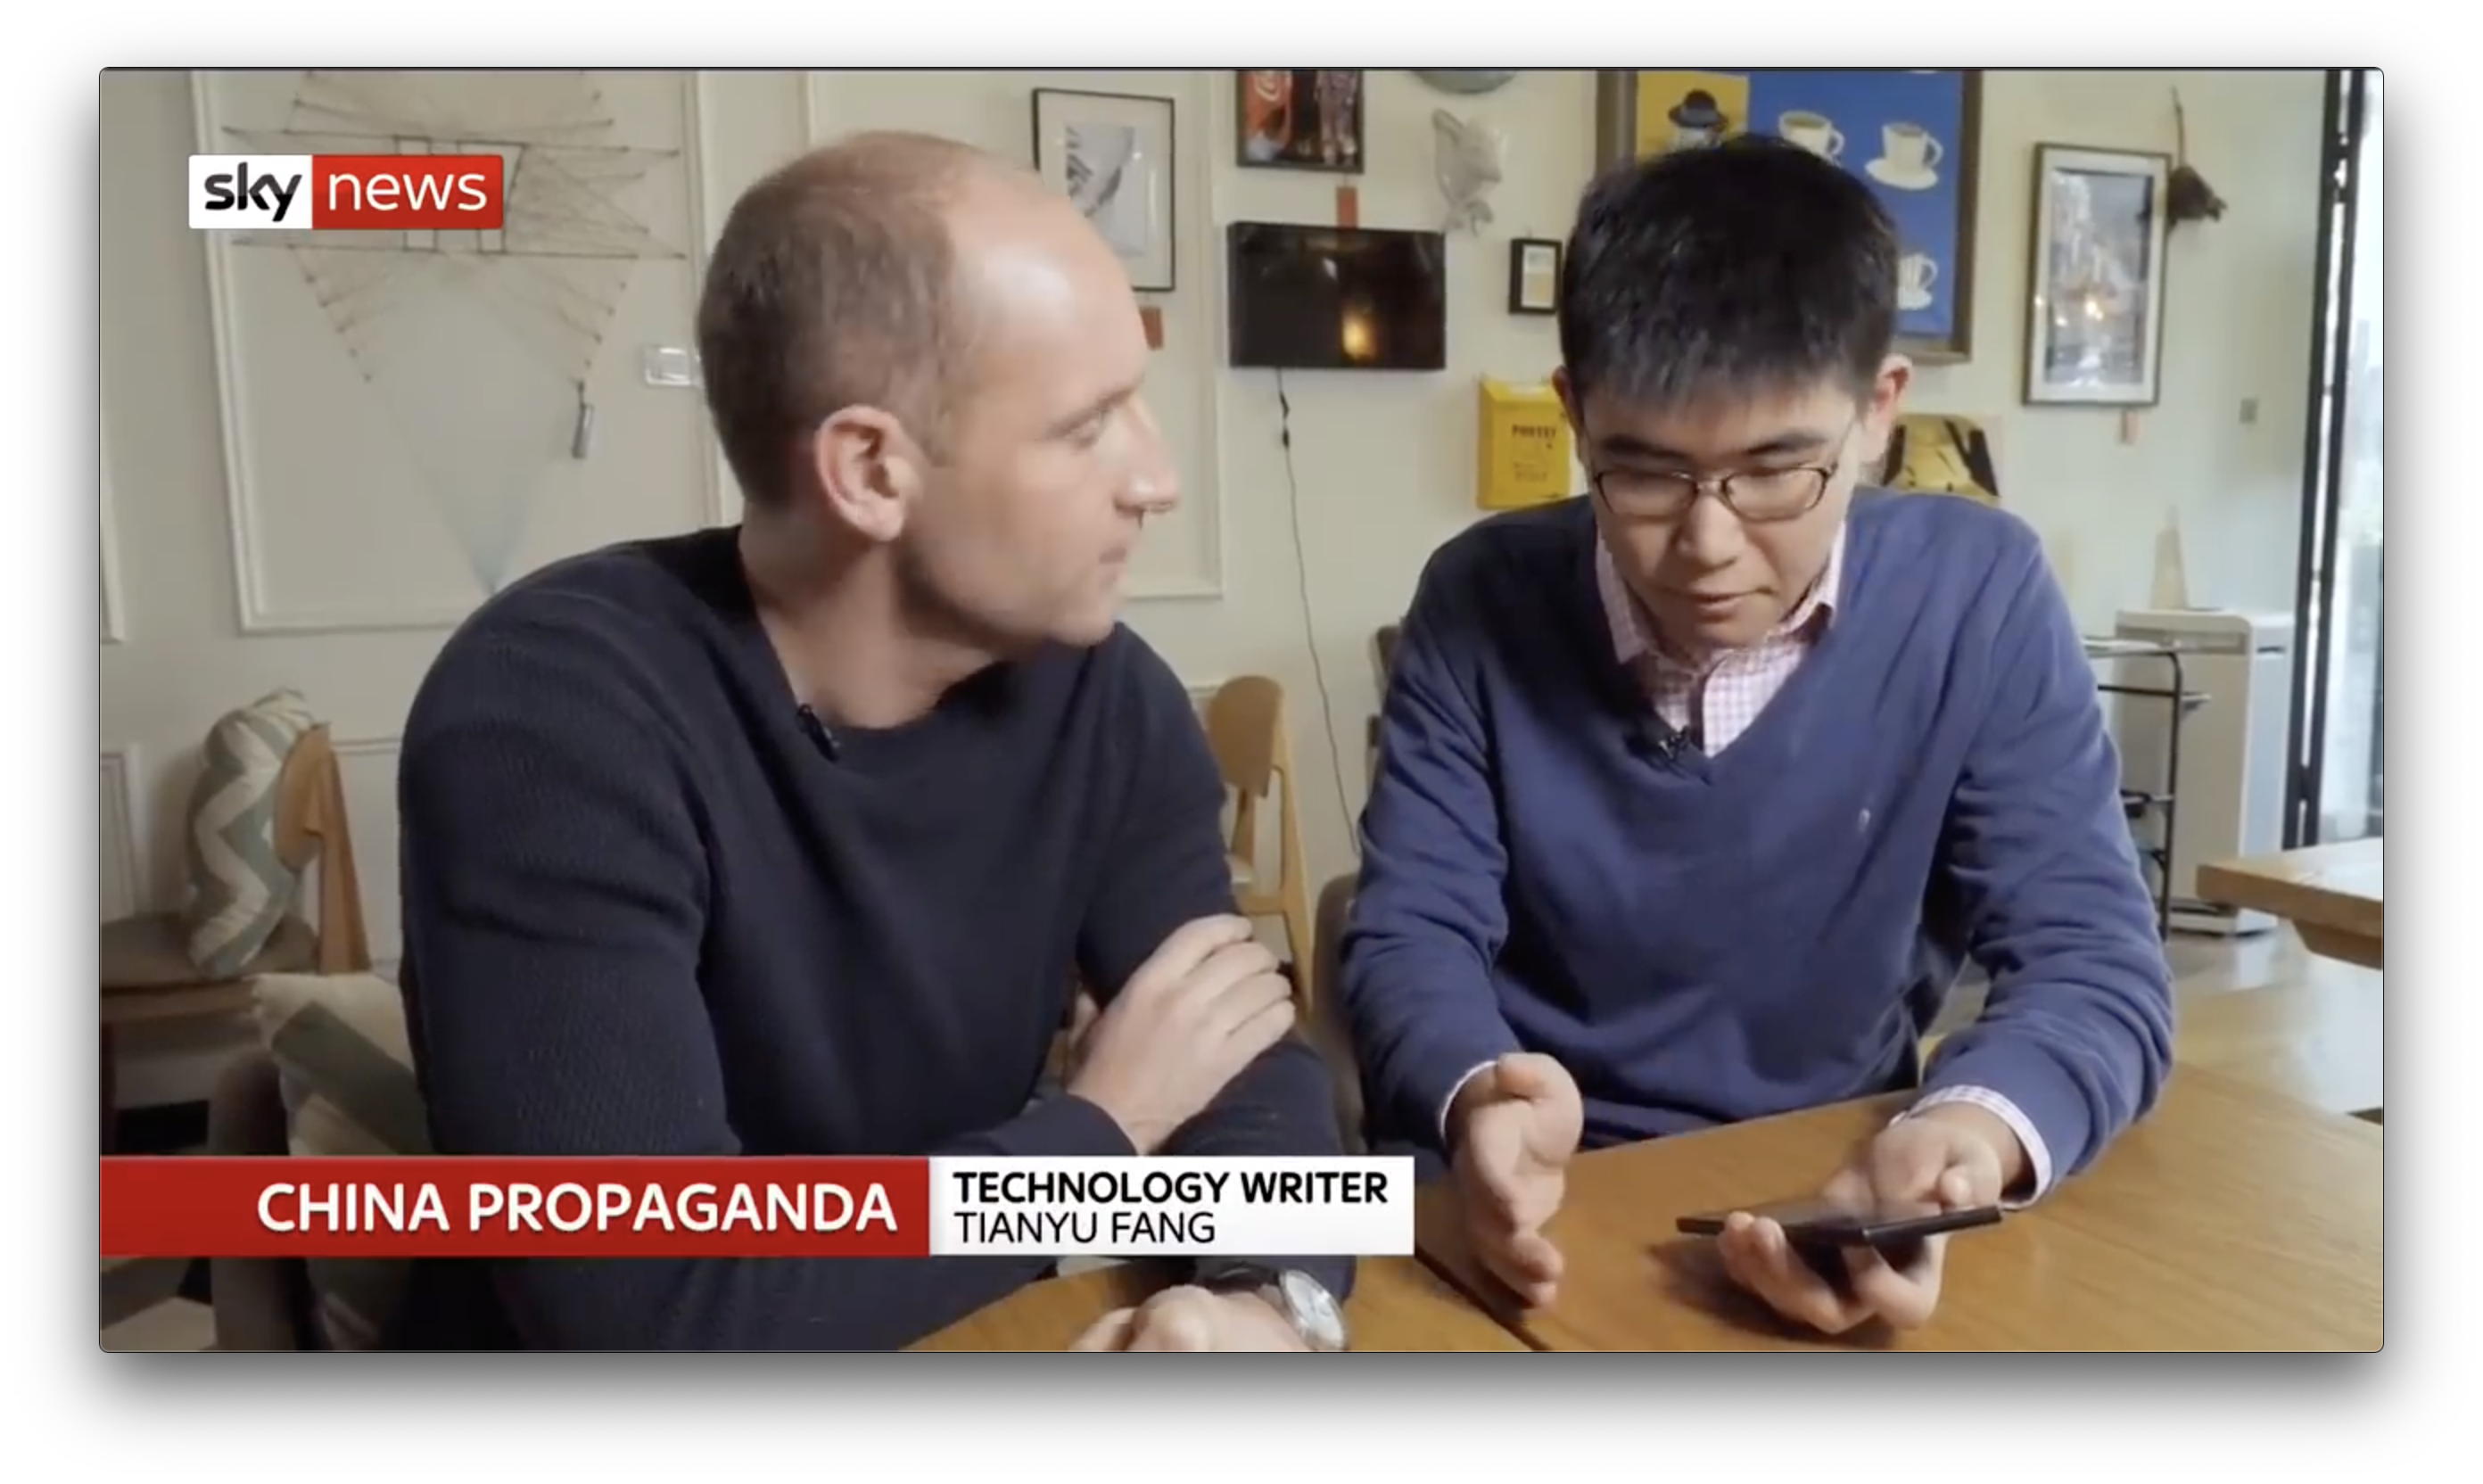 Introducing China's propaganda app on Sky News